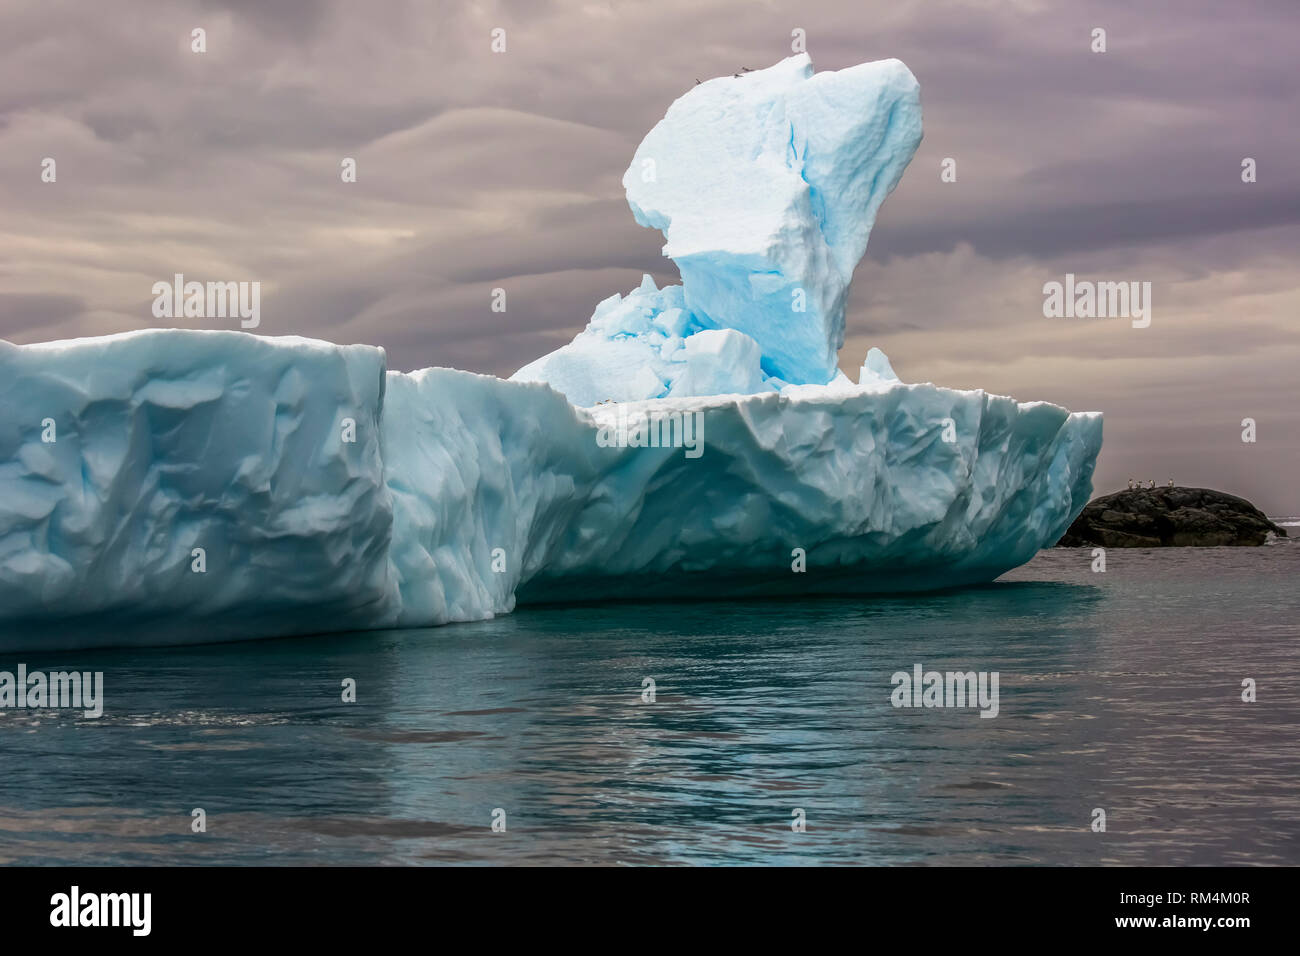 melting Iceberg with ice floe in foreground, floating in the sea, Antarctica - Stock Image